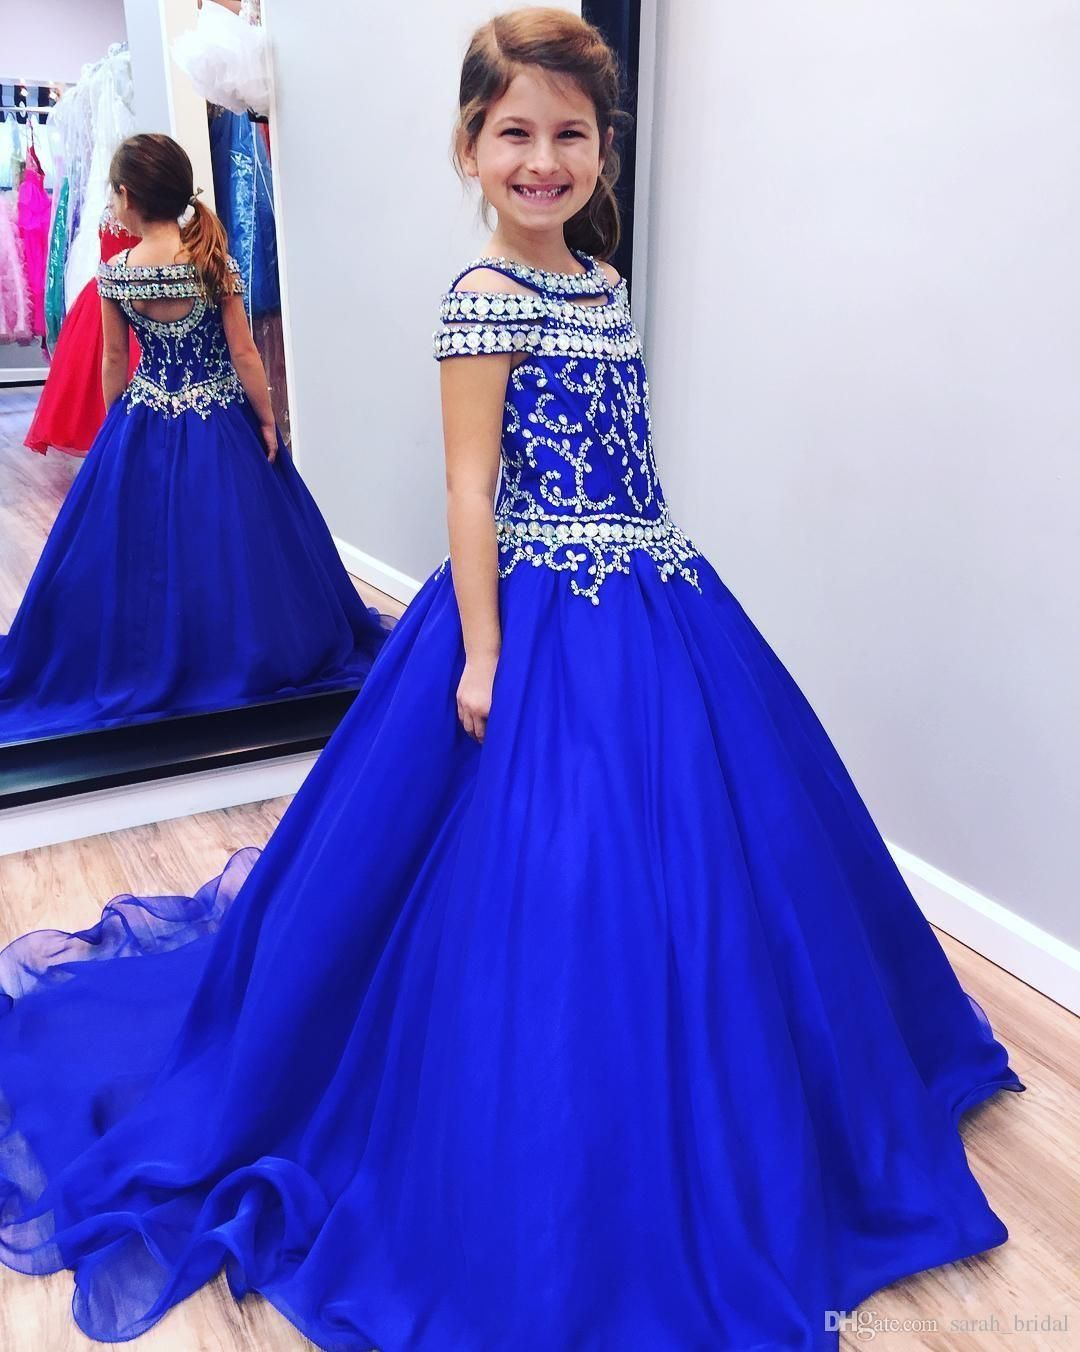 9d2cab3f4e2 Beauty Blue Green White Applique Beads Flower Girl Dresses Princess Dresses  Girl s Pageant Dresses Custom Made Size 2-6 8 10 12 14 KF314033 2018 from  ...